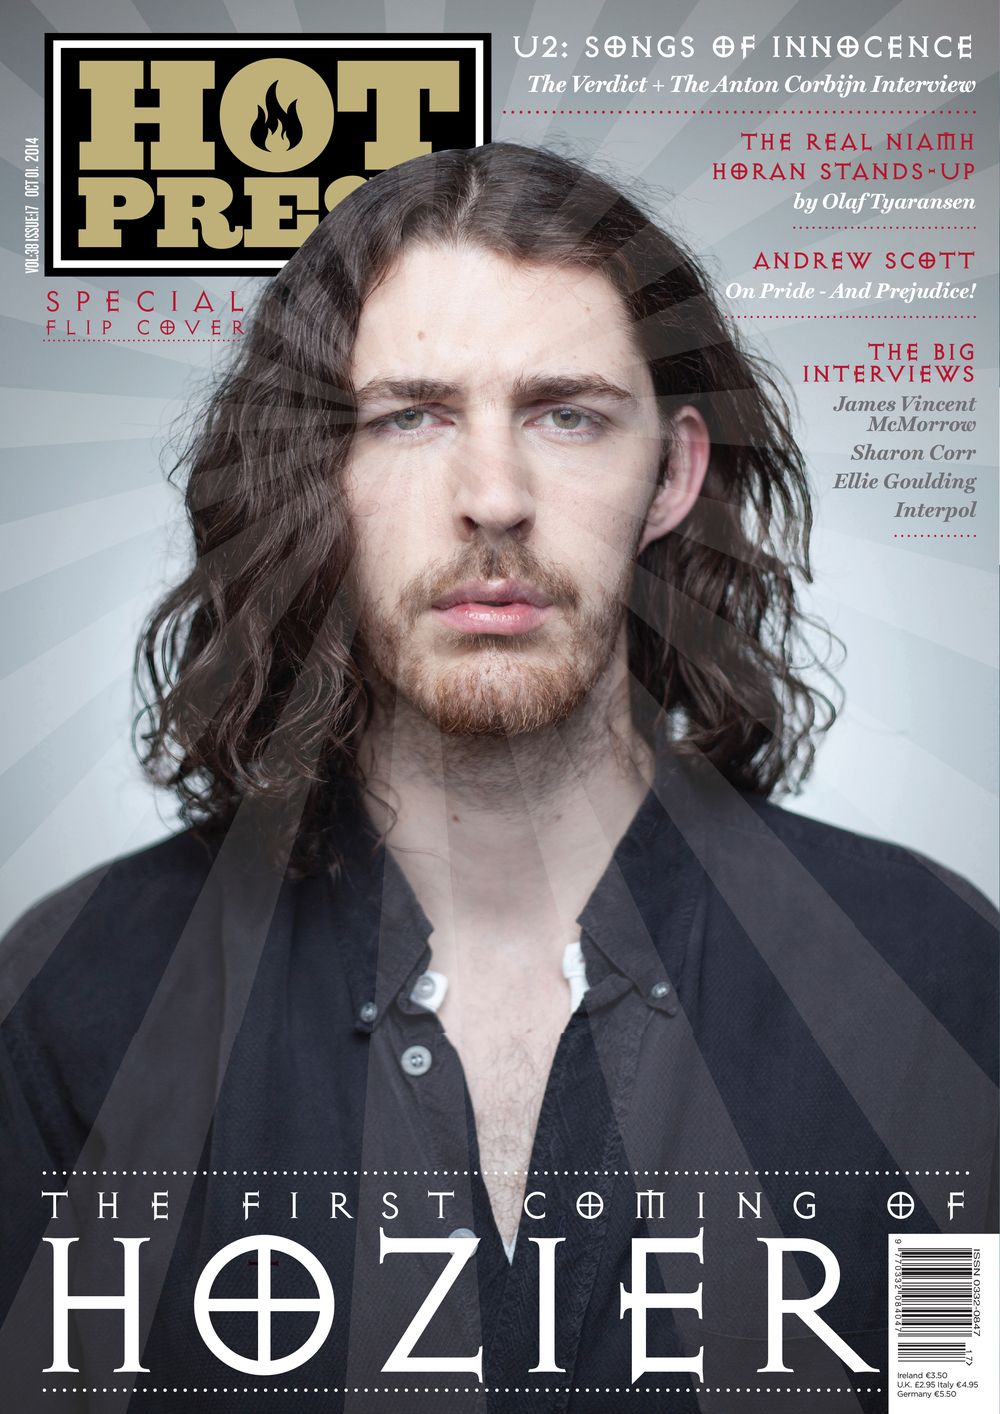 Research And Planning Music Magazine Analysis 1 In 2020 Hozier Music Magazines Church Songs